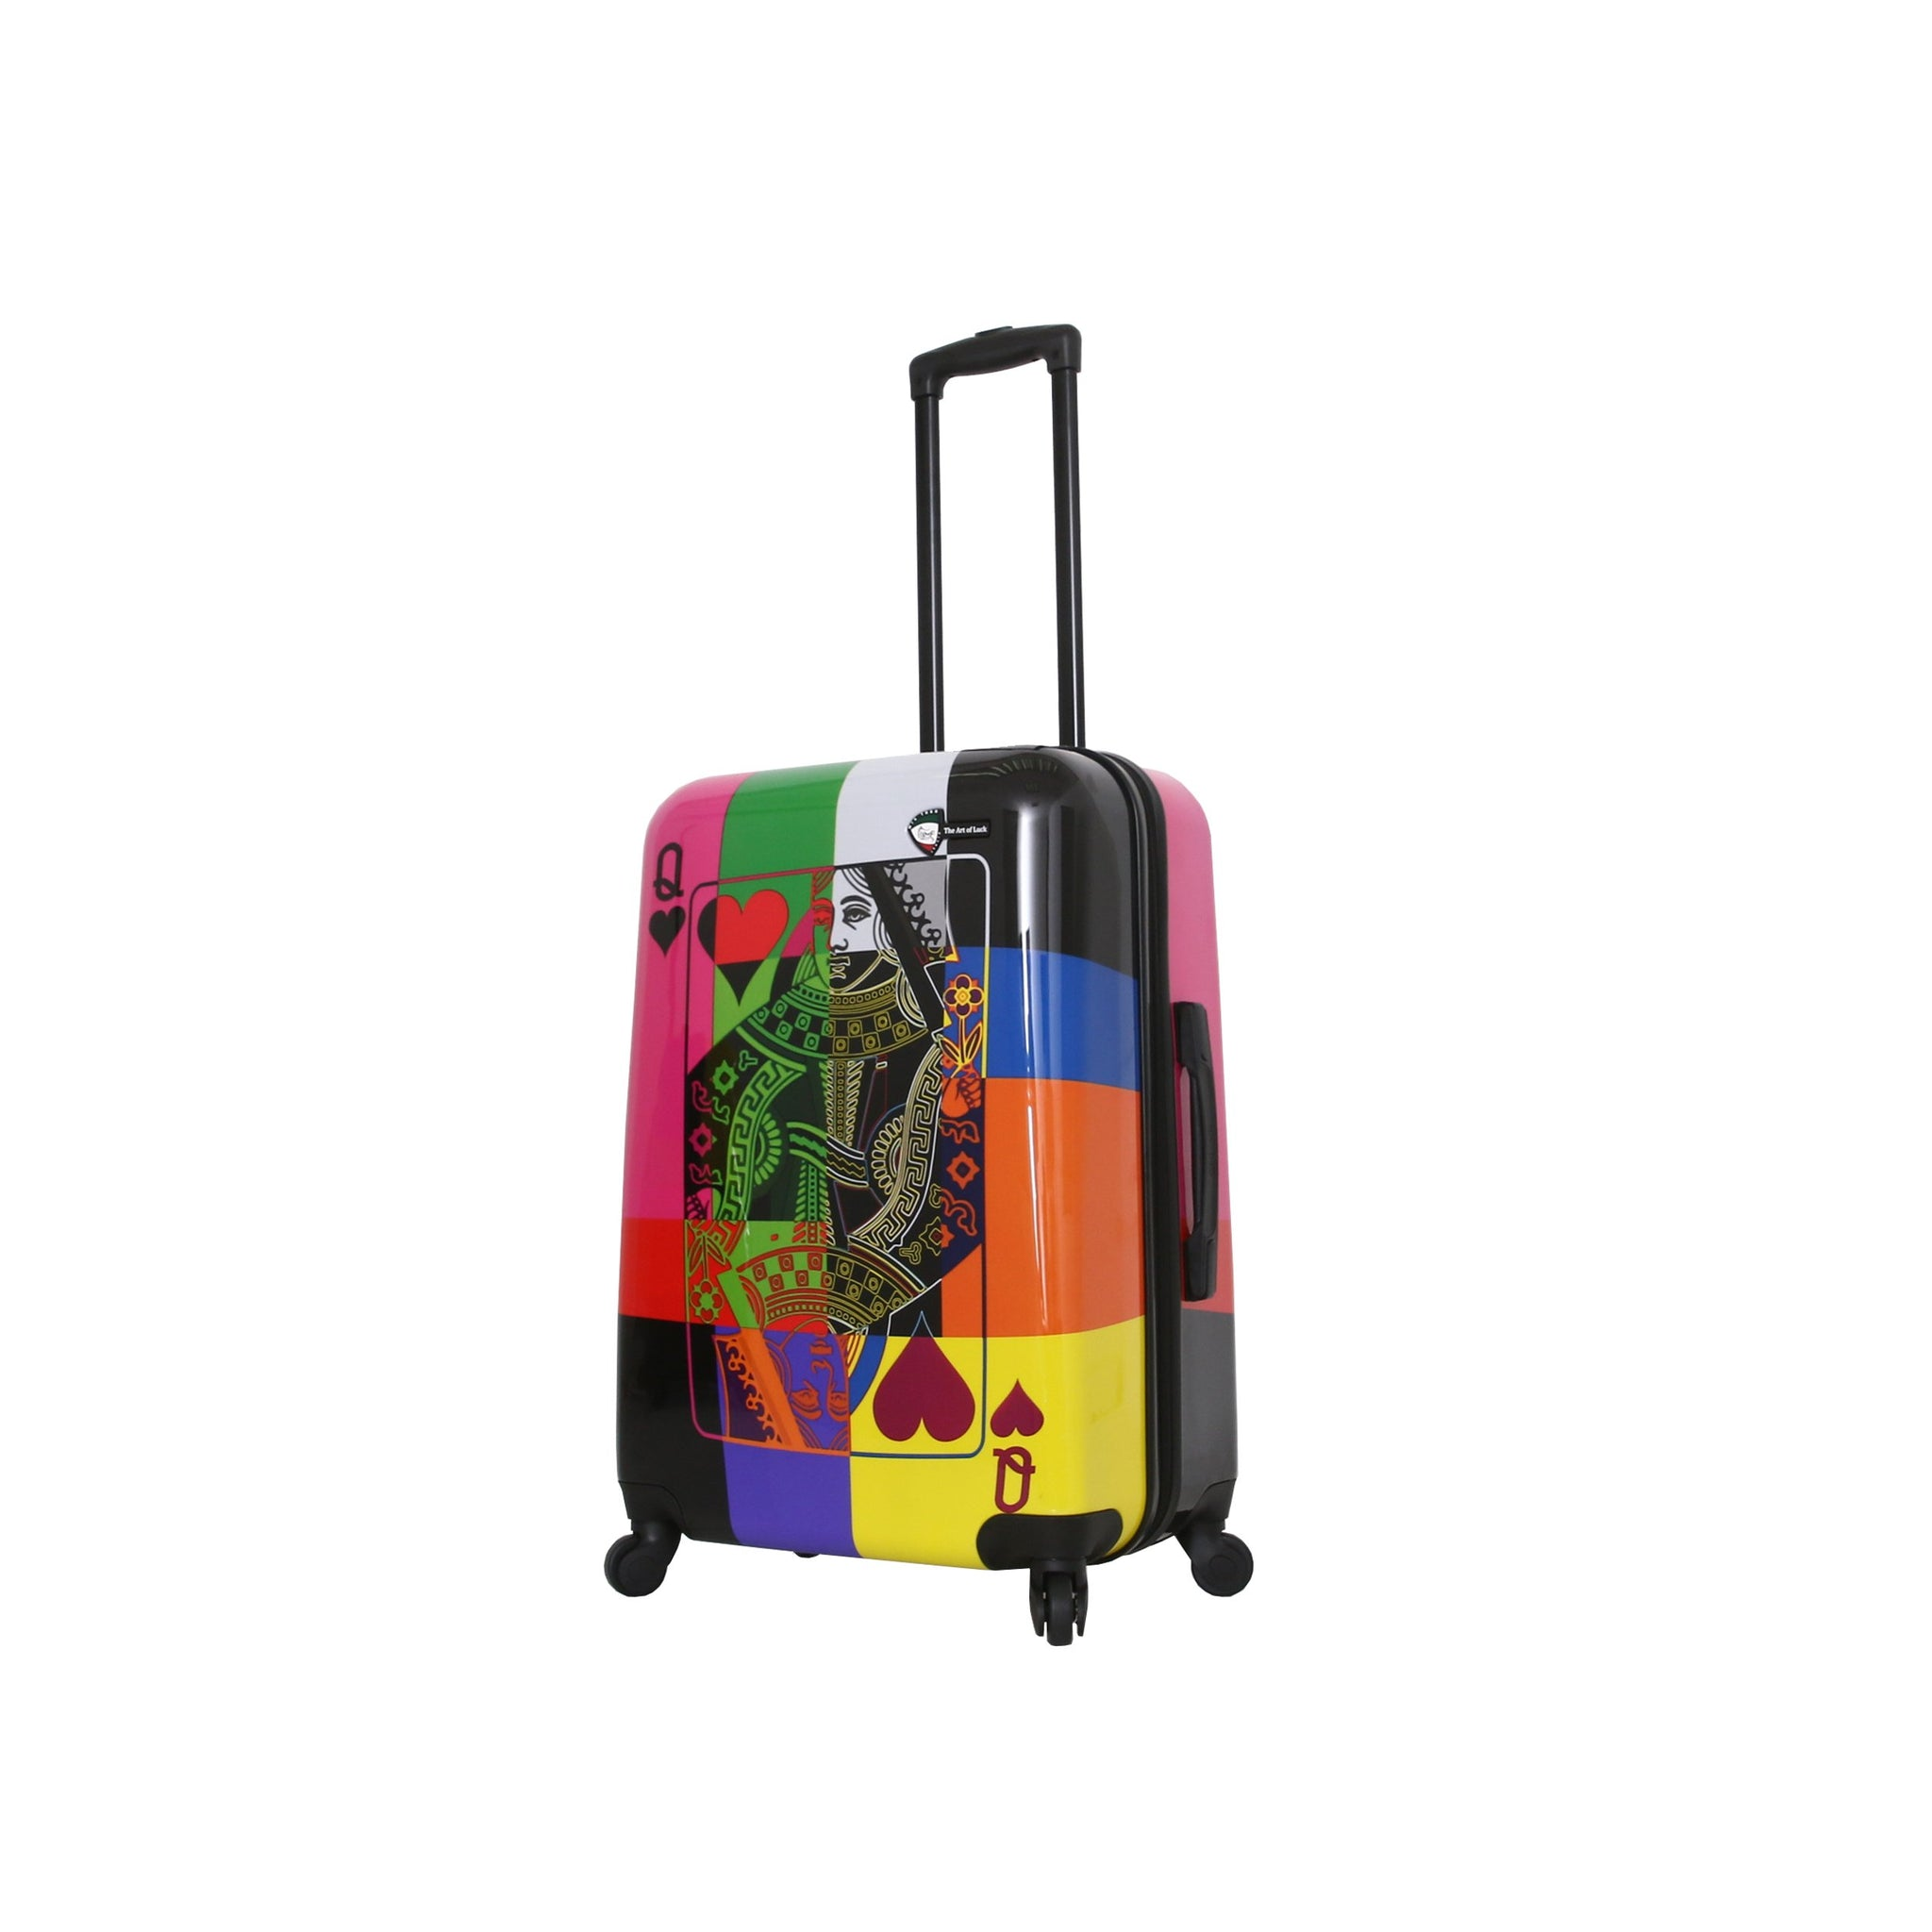 "The Art of Luck 24"" Spinner Luggage"